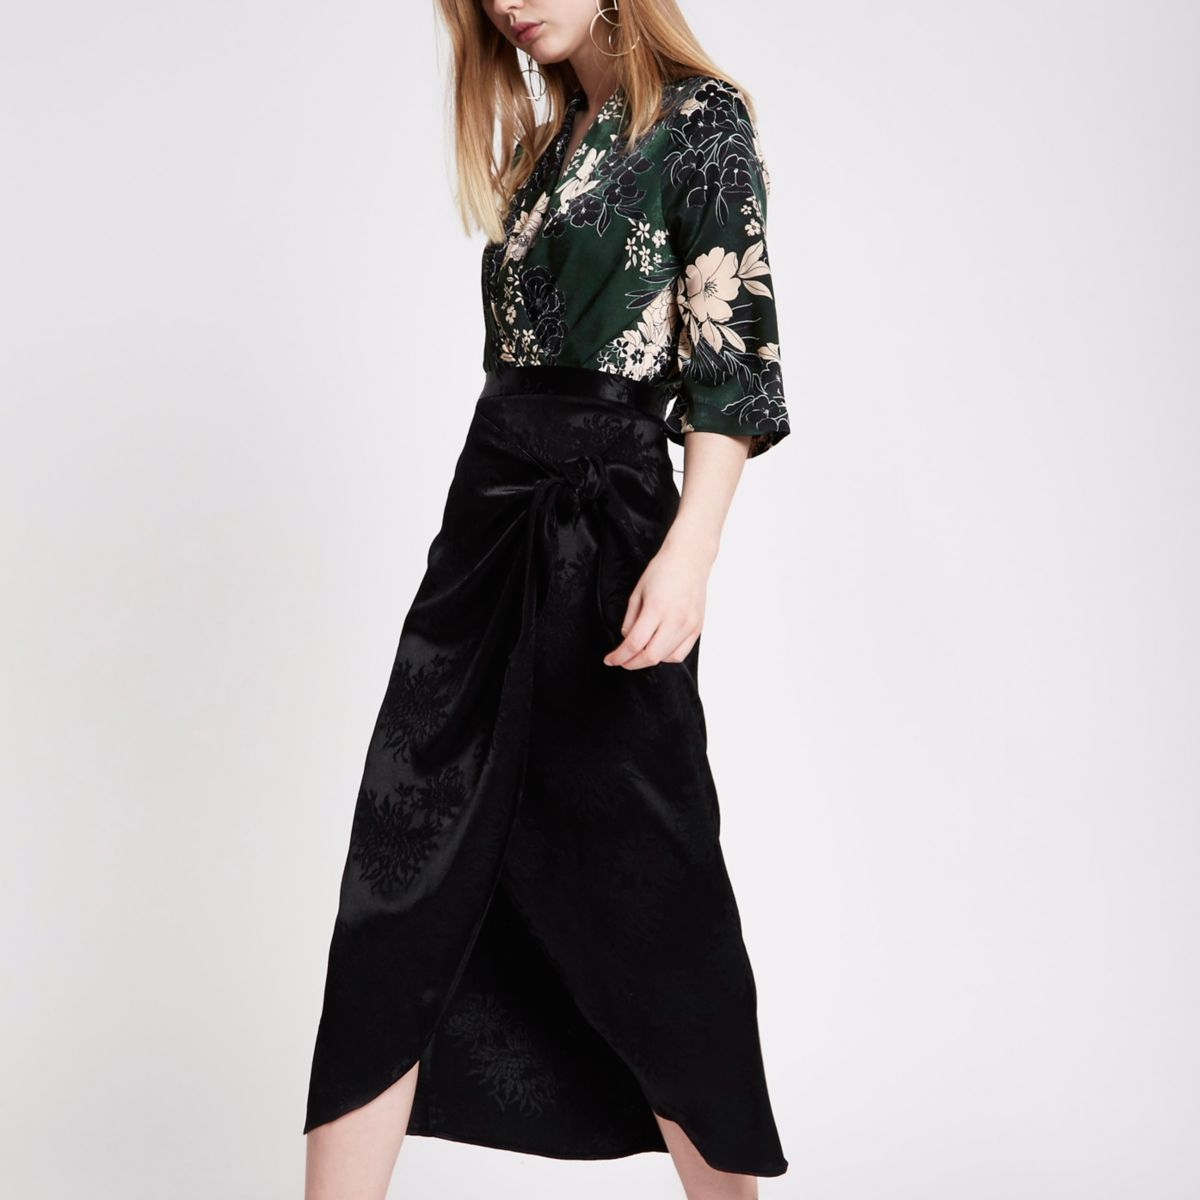 Black satin jacquard tie front pencil skirt